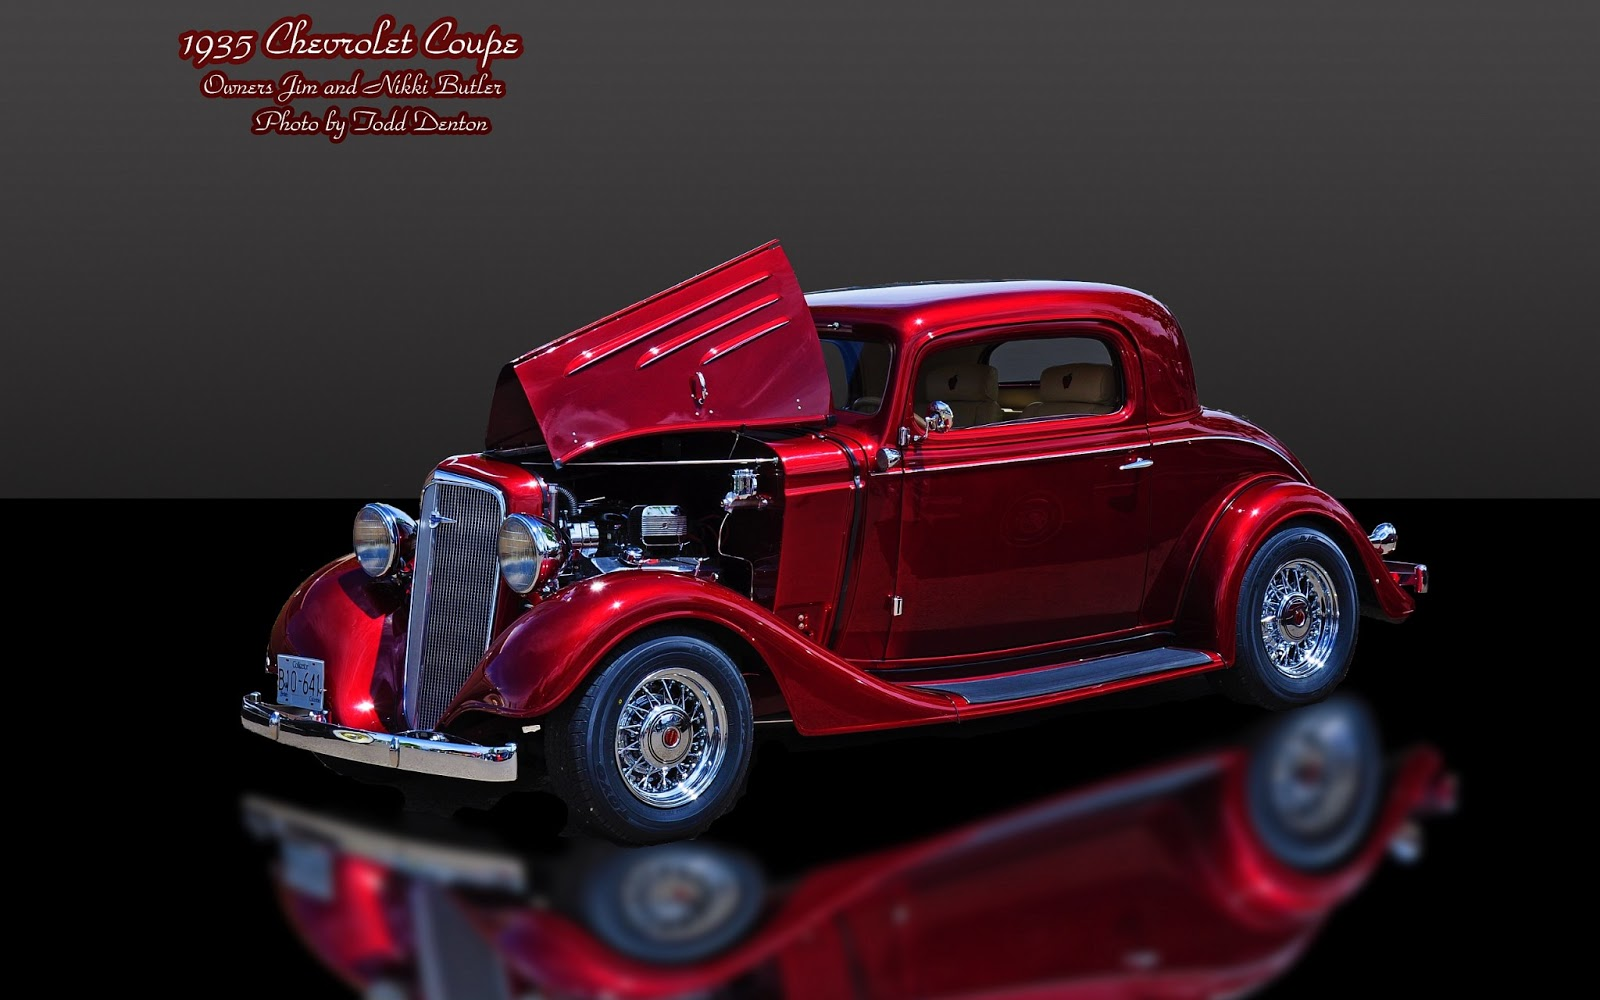 free old car 2 wallpaper download the free old car 2 wallpaper1024